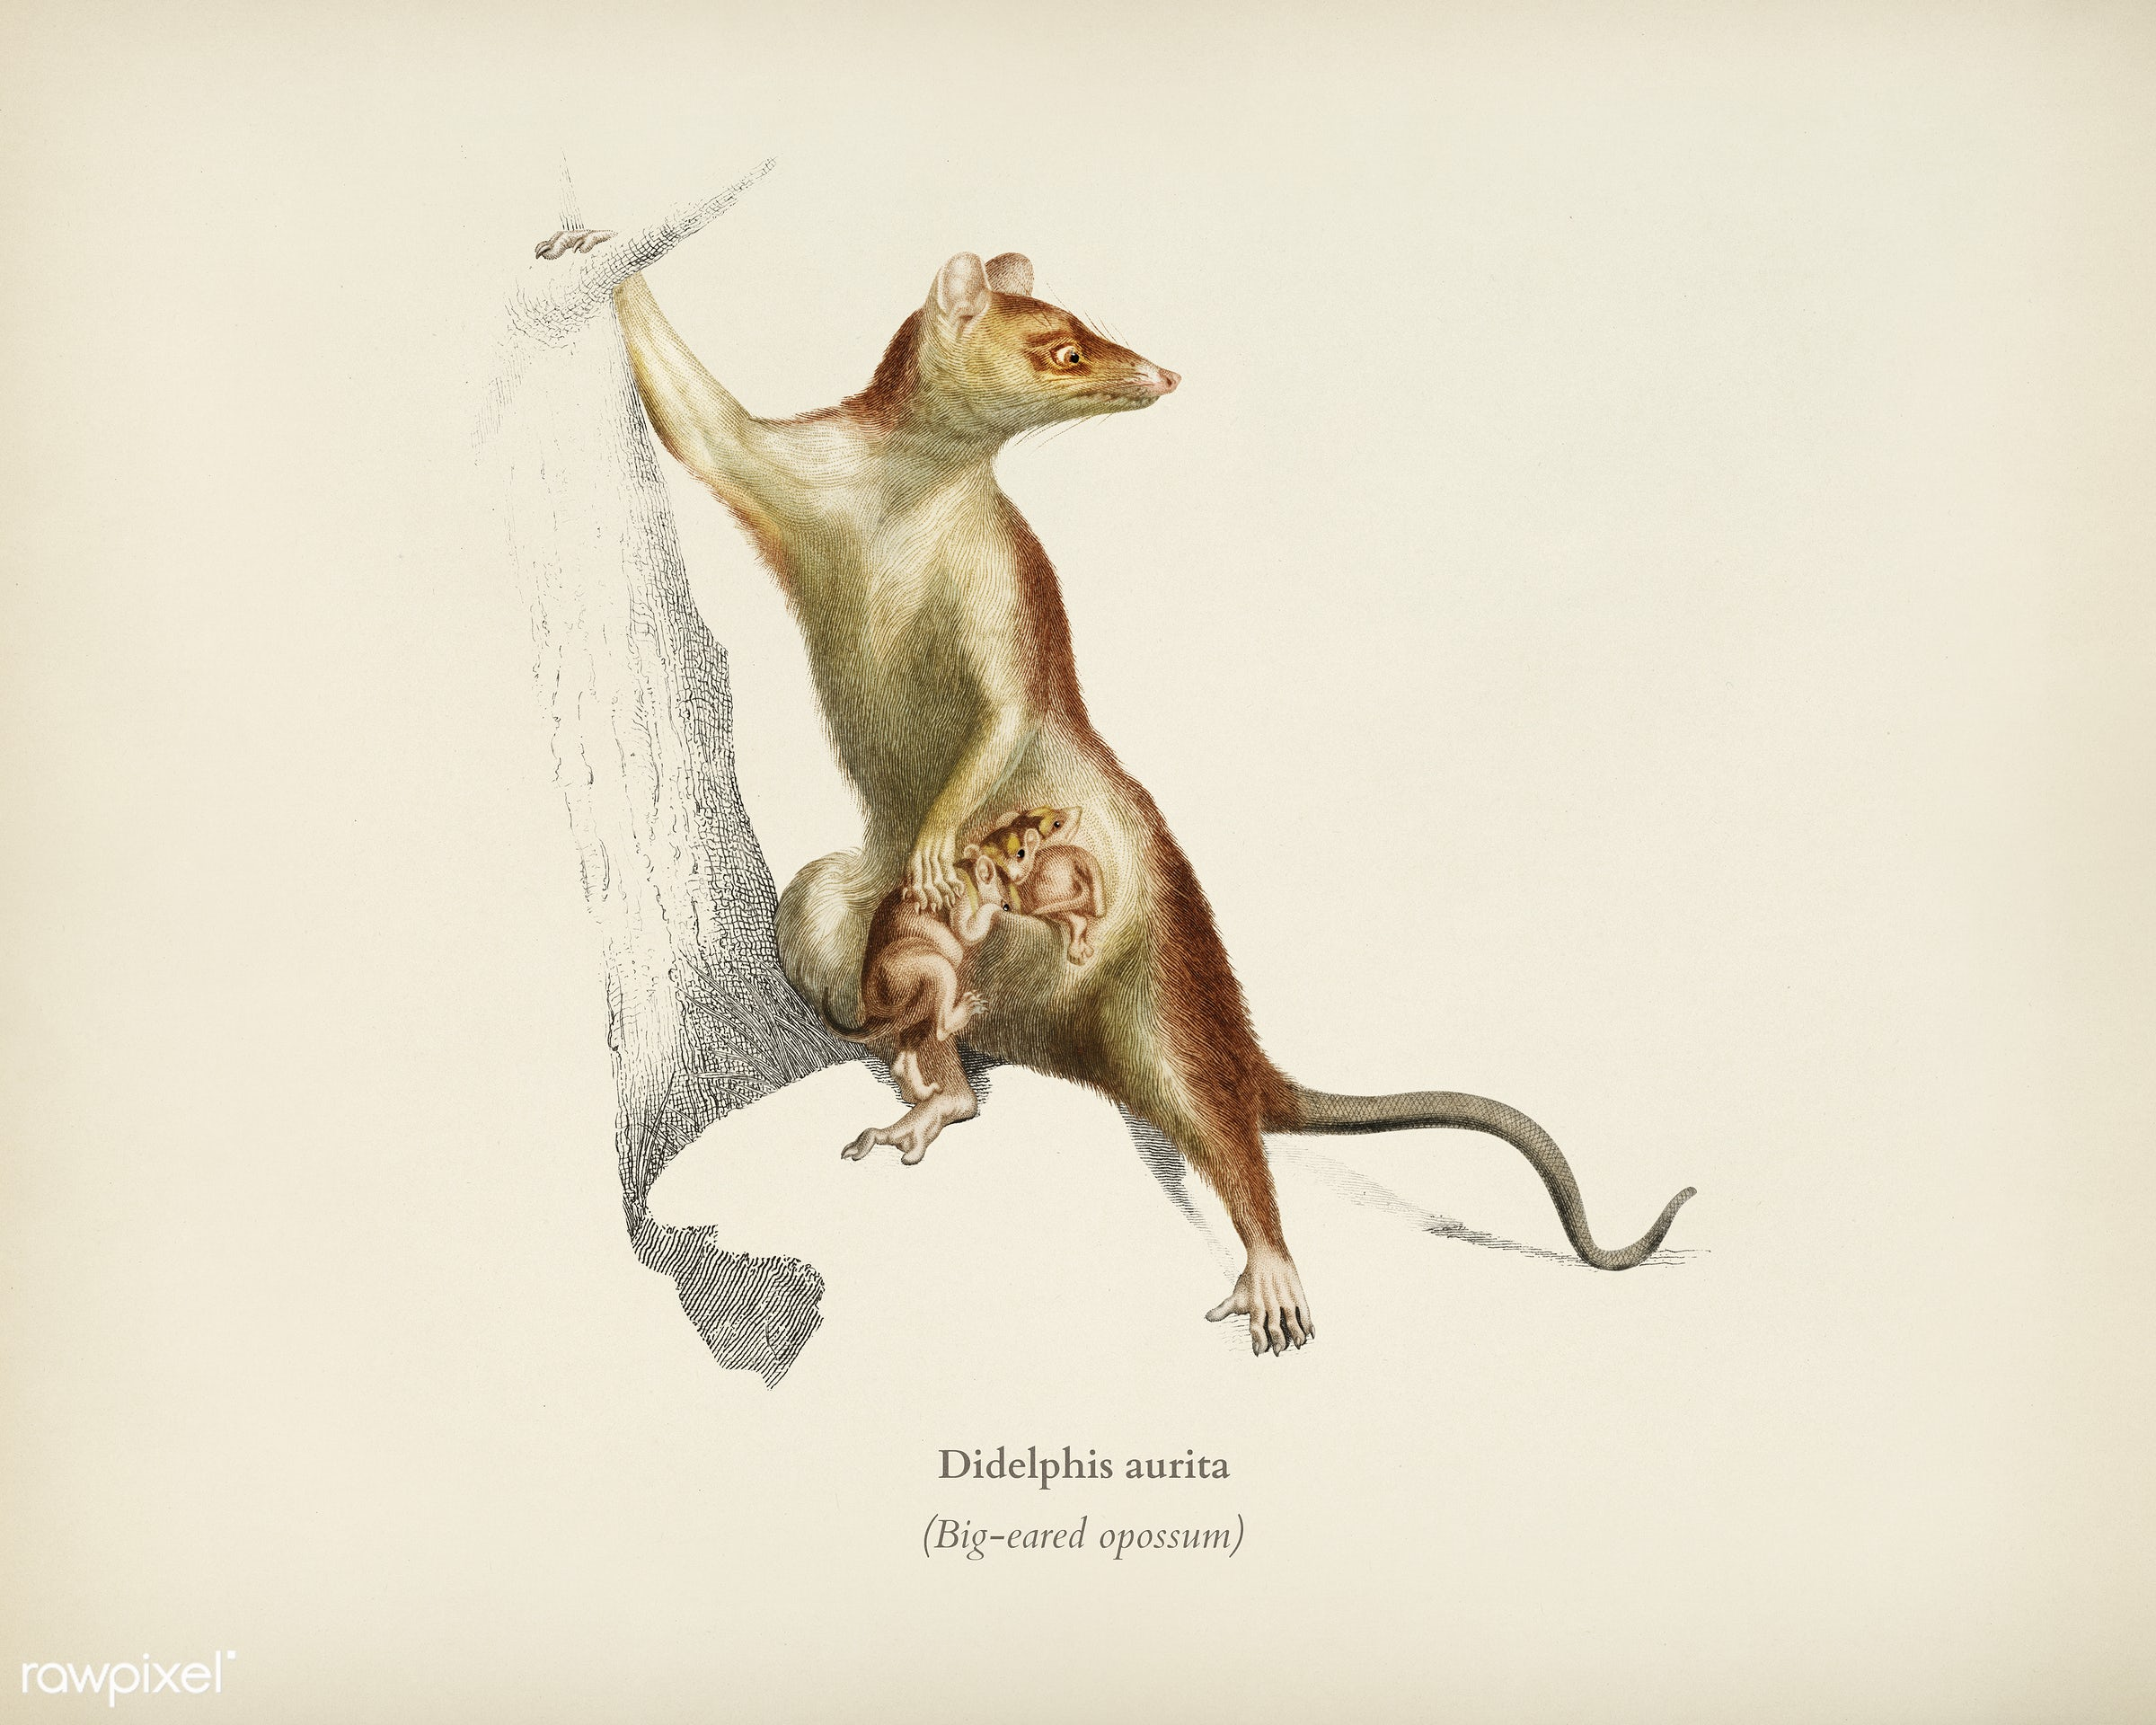 Big-eared opossum (Didelphis aurita) illustrated by Charles Dessalines D' Orbigny (1806-1876). Digitally enhanced from...